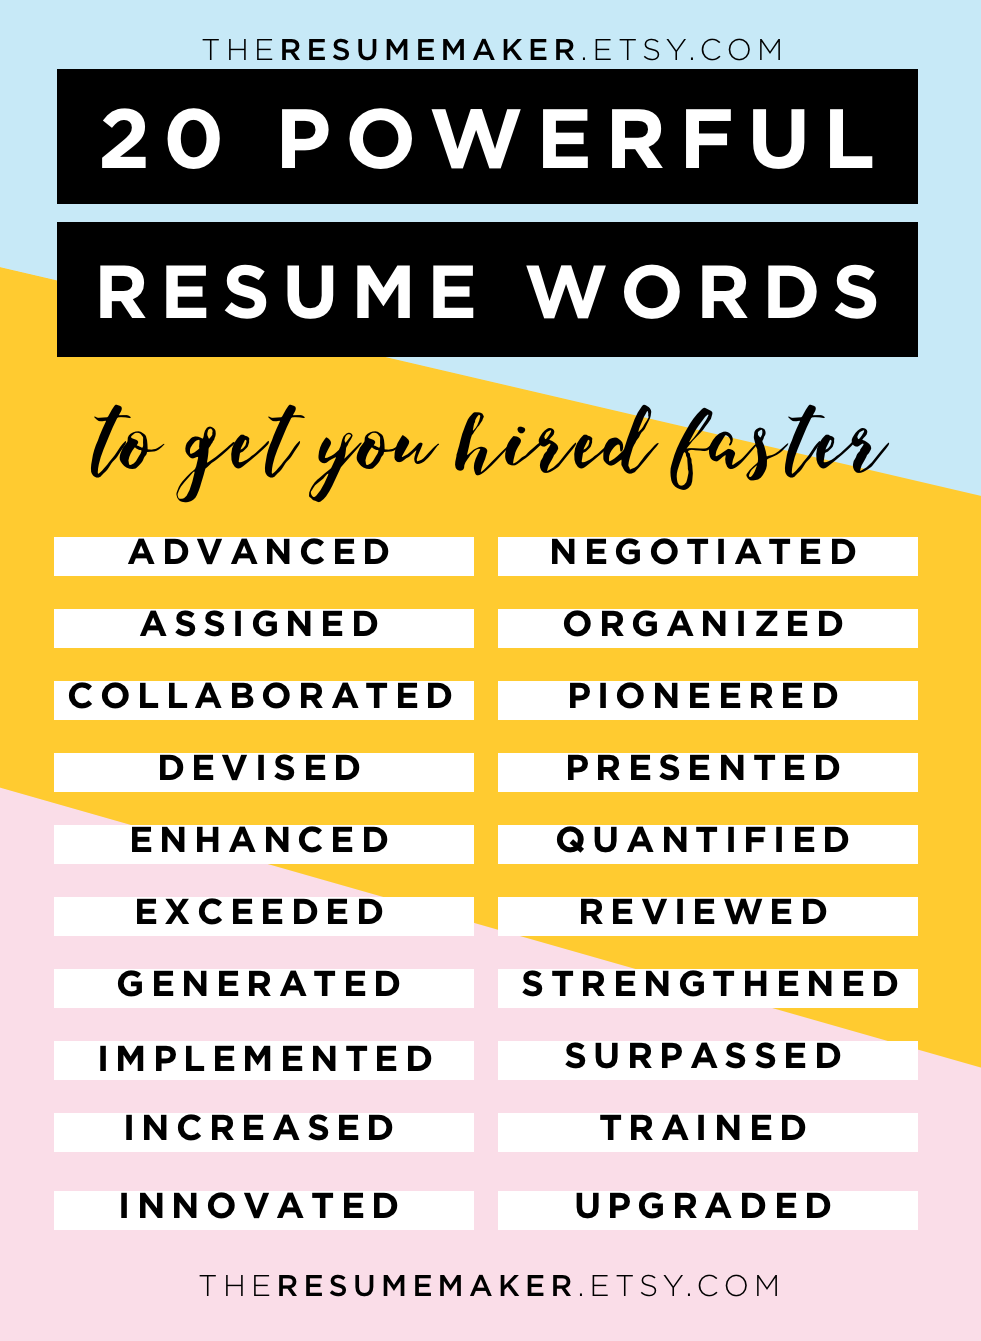 Resume Power Words, Free Resume Tips, Resume Template, Resume Words, Action  Words  Tips For A Resume